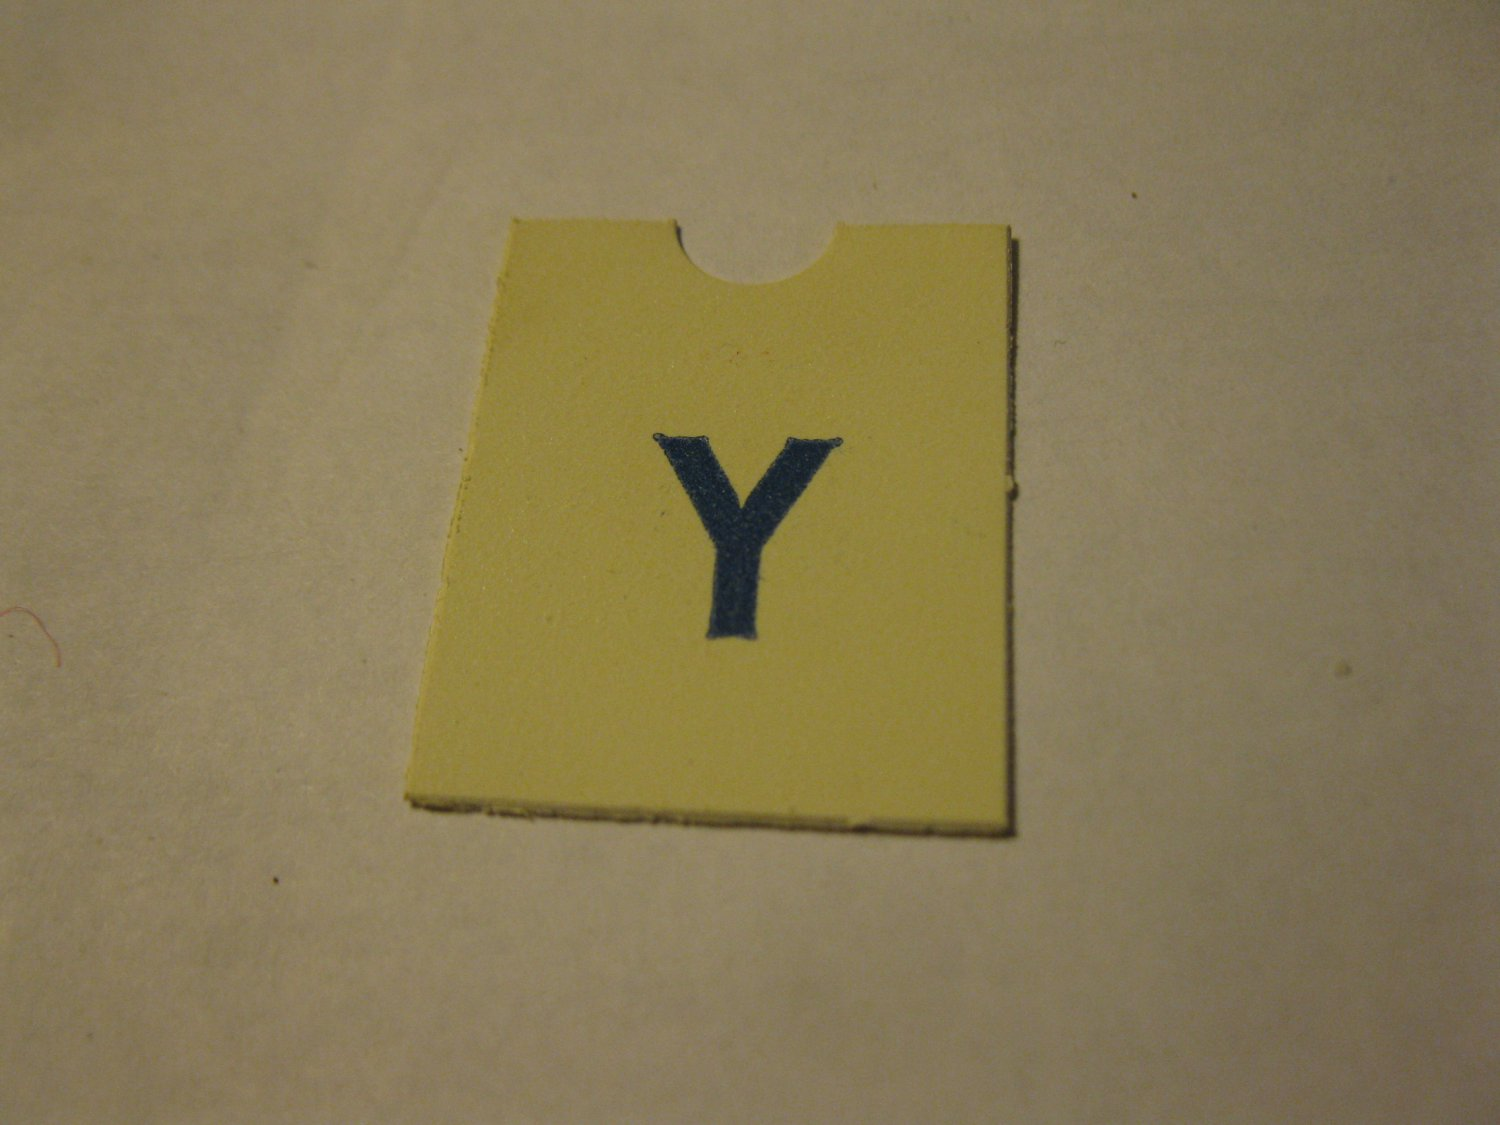 1967 4CYTE Board Game Piece: Blue Letter Tab - Y